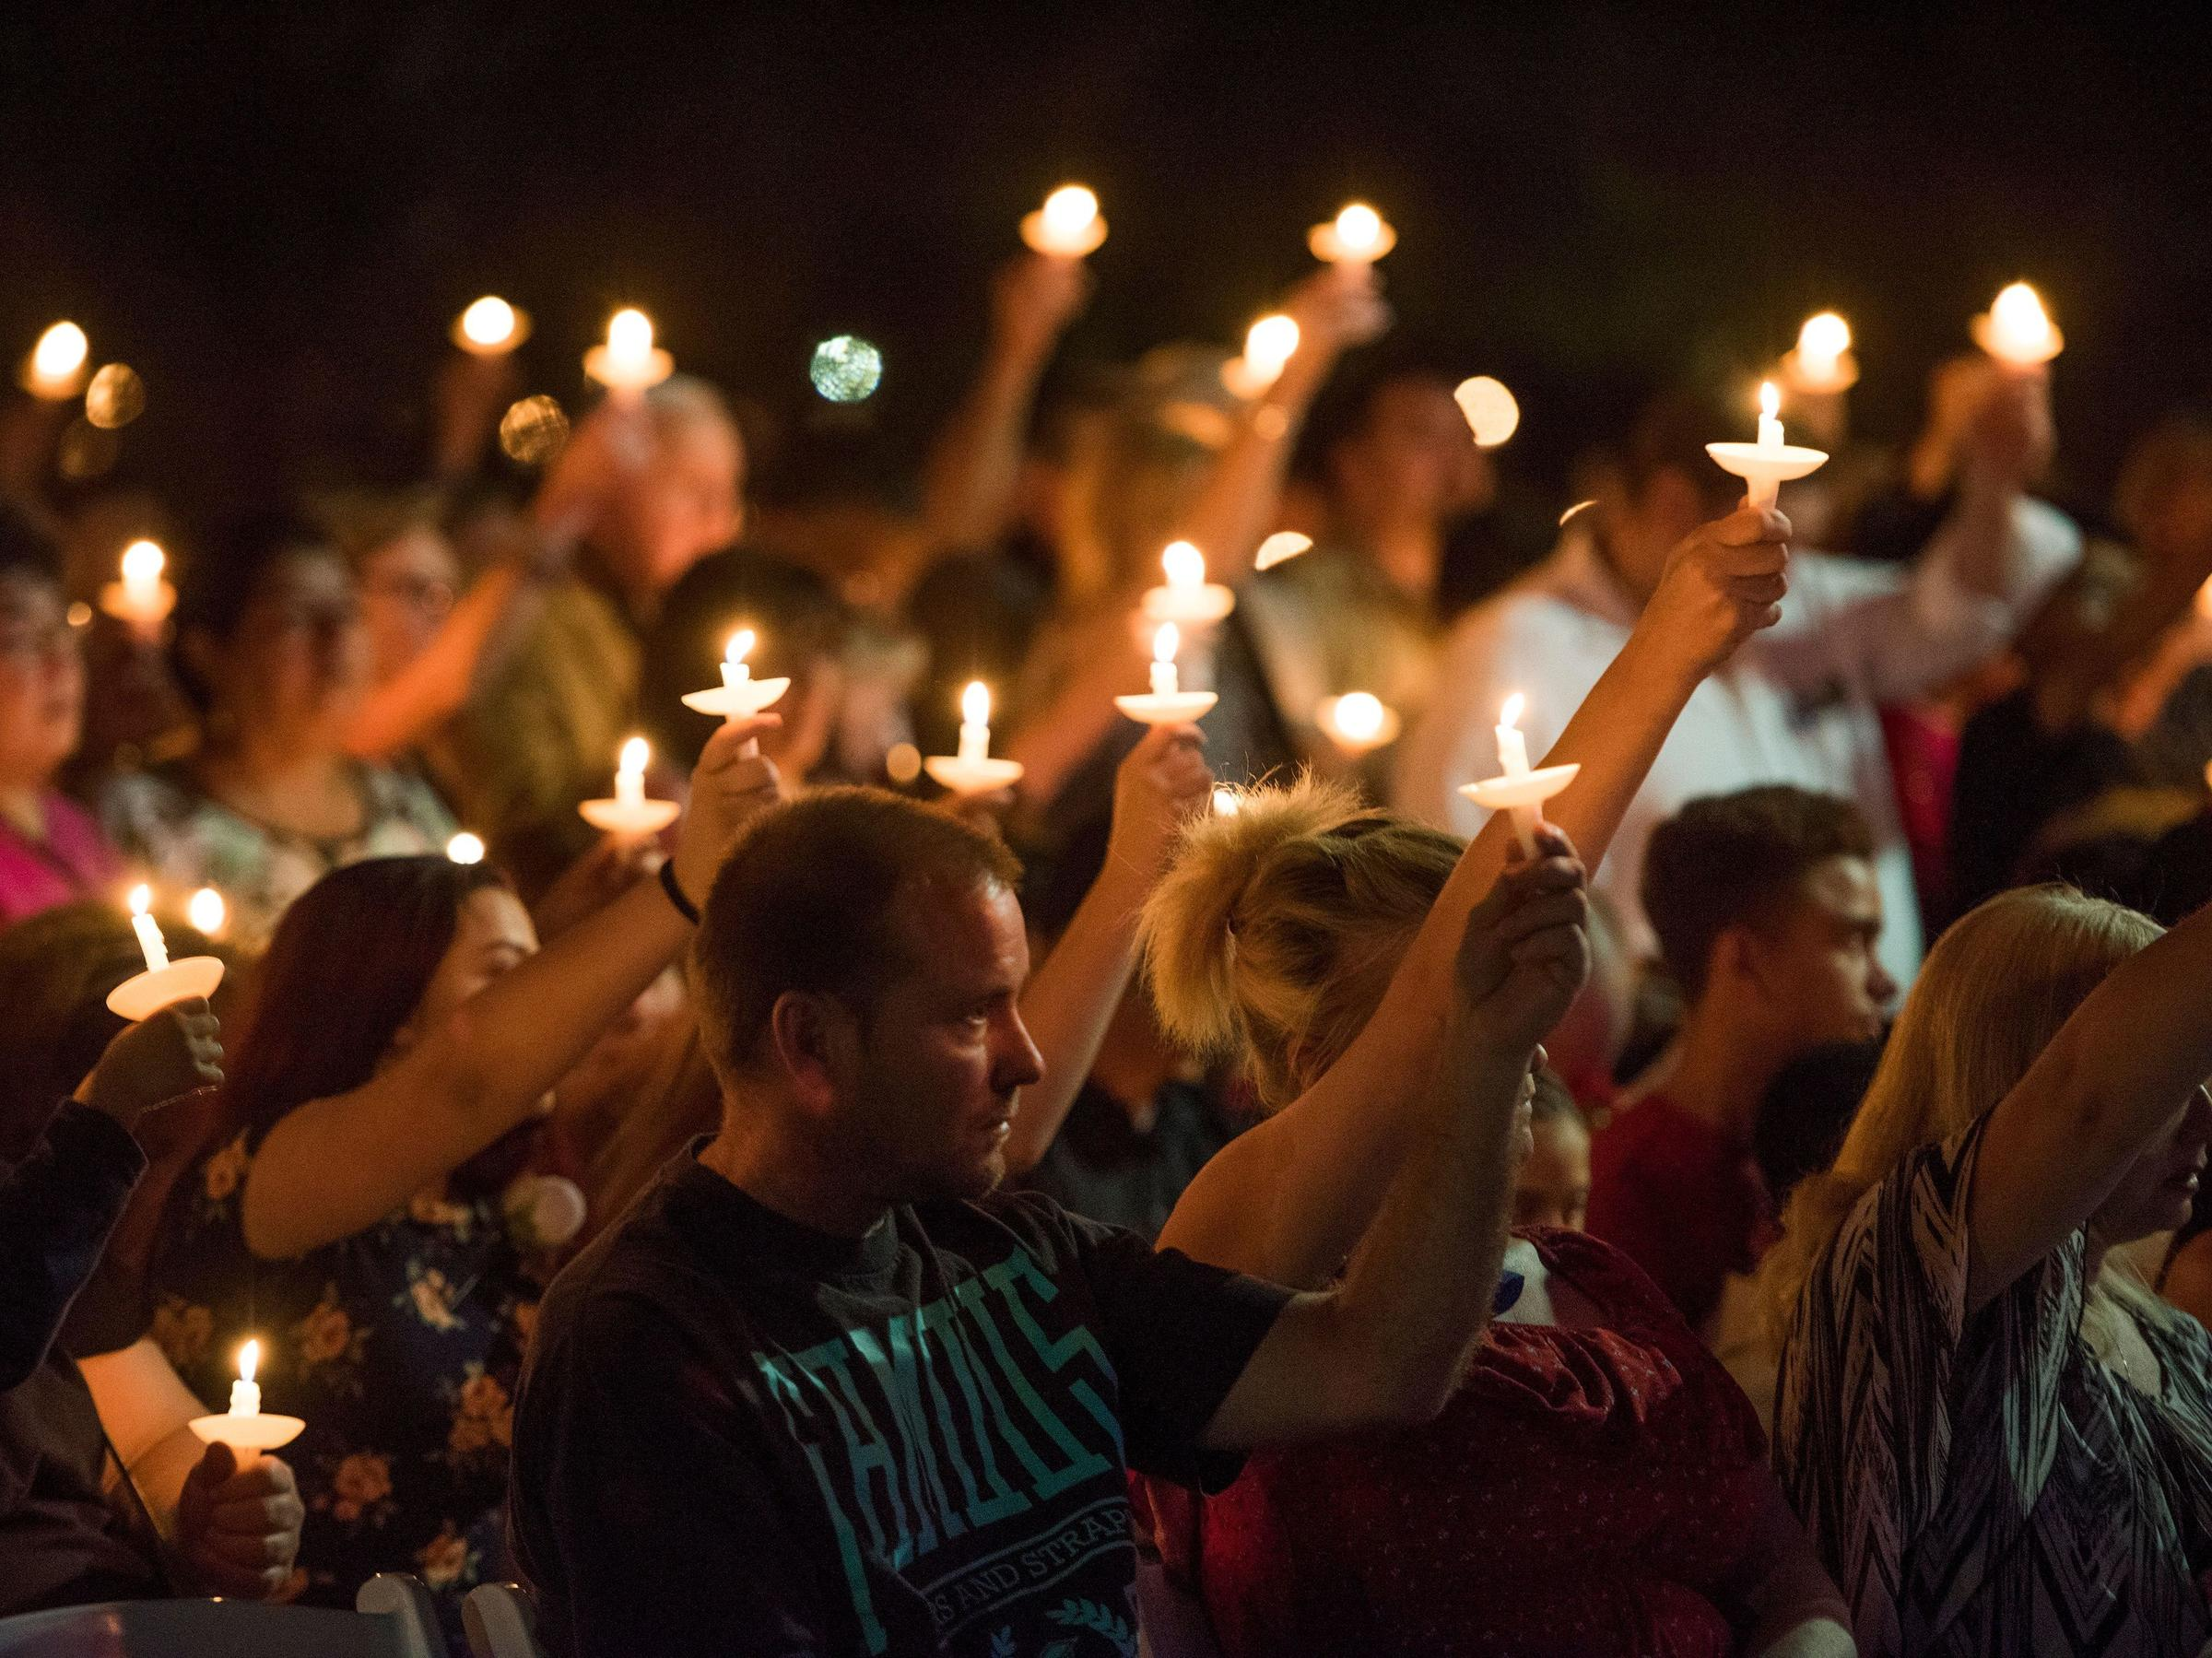 People hold up candles at a memorial service for Charleston Hartfield, a Las Vegas police officer who was killed when a gunman opened fire on a country music festival, in Las Vegas, Nevada on Oct. 1.